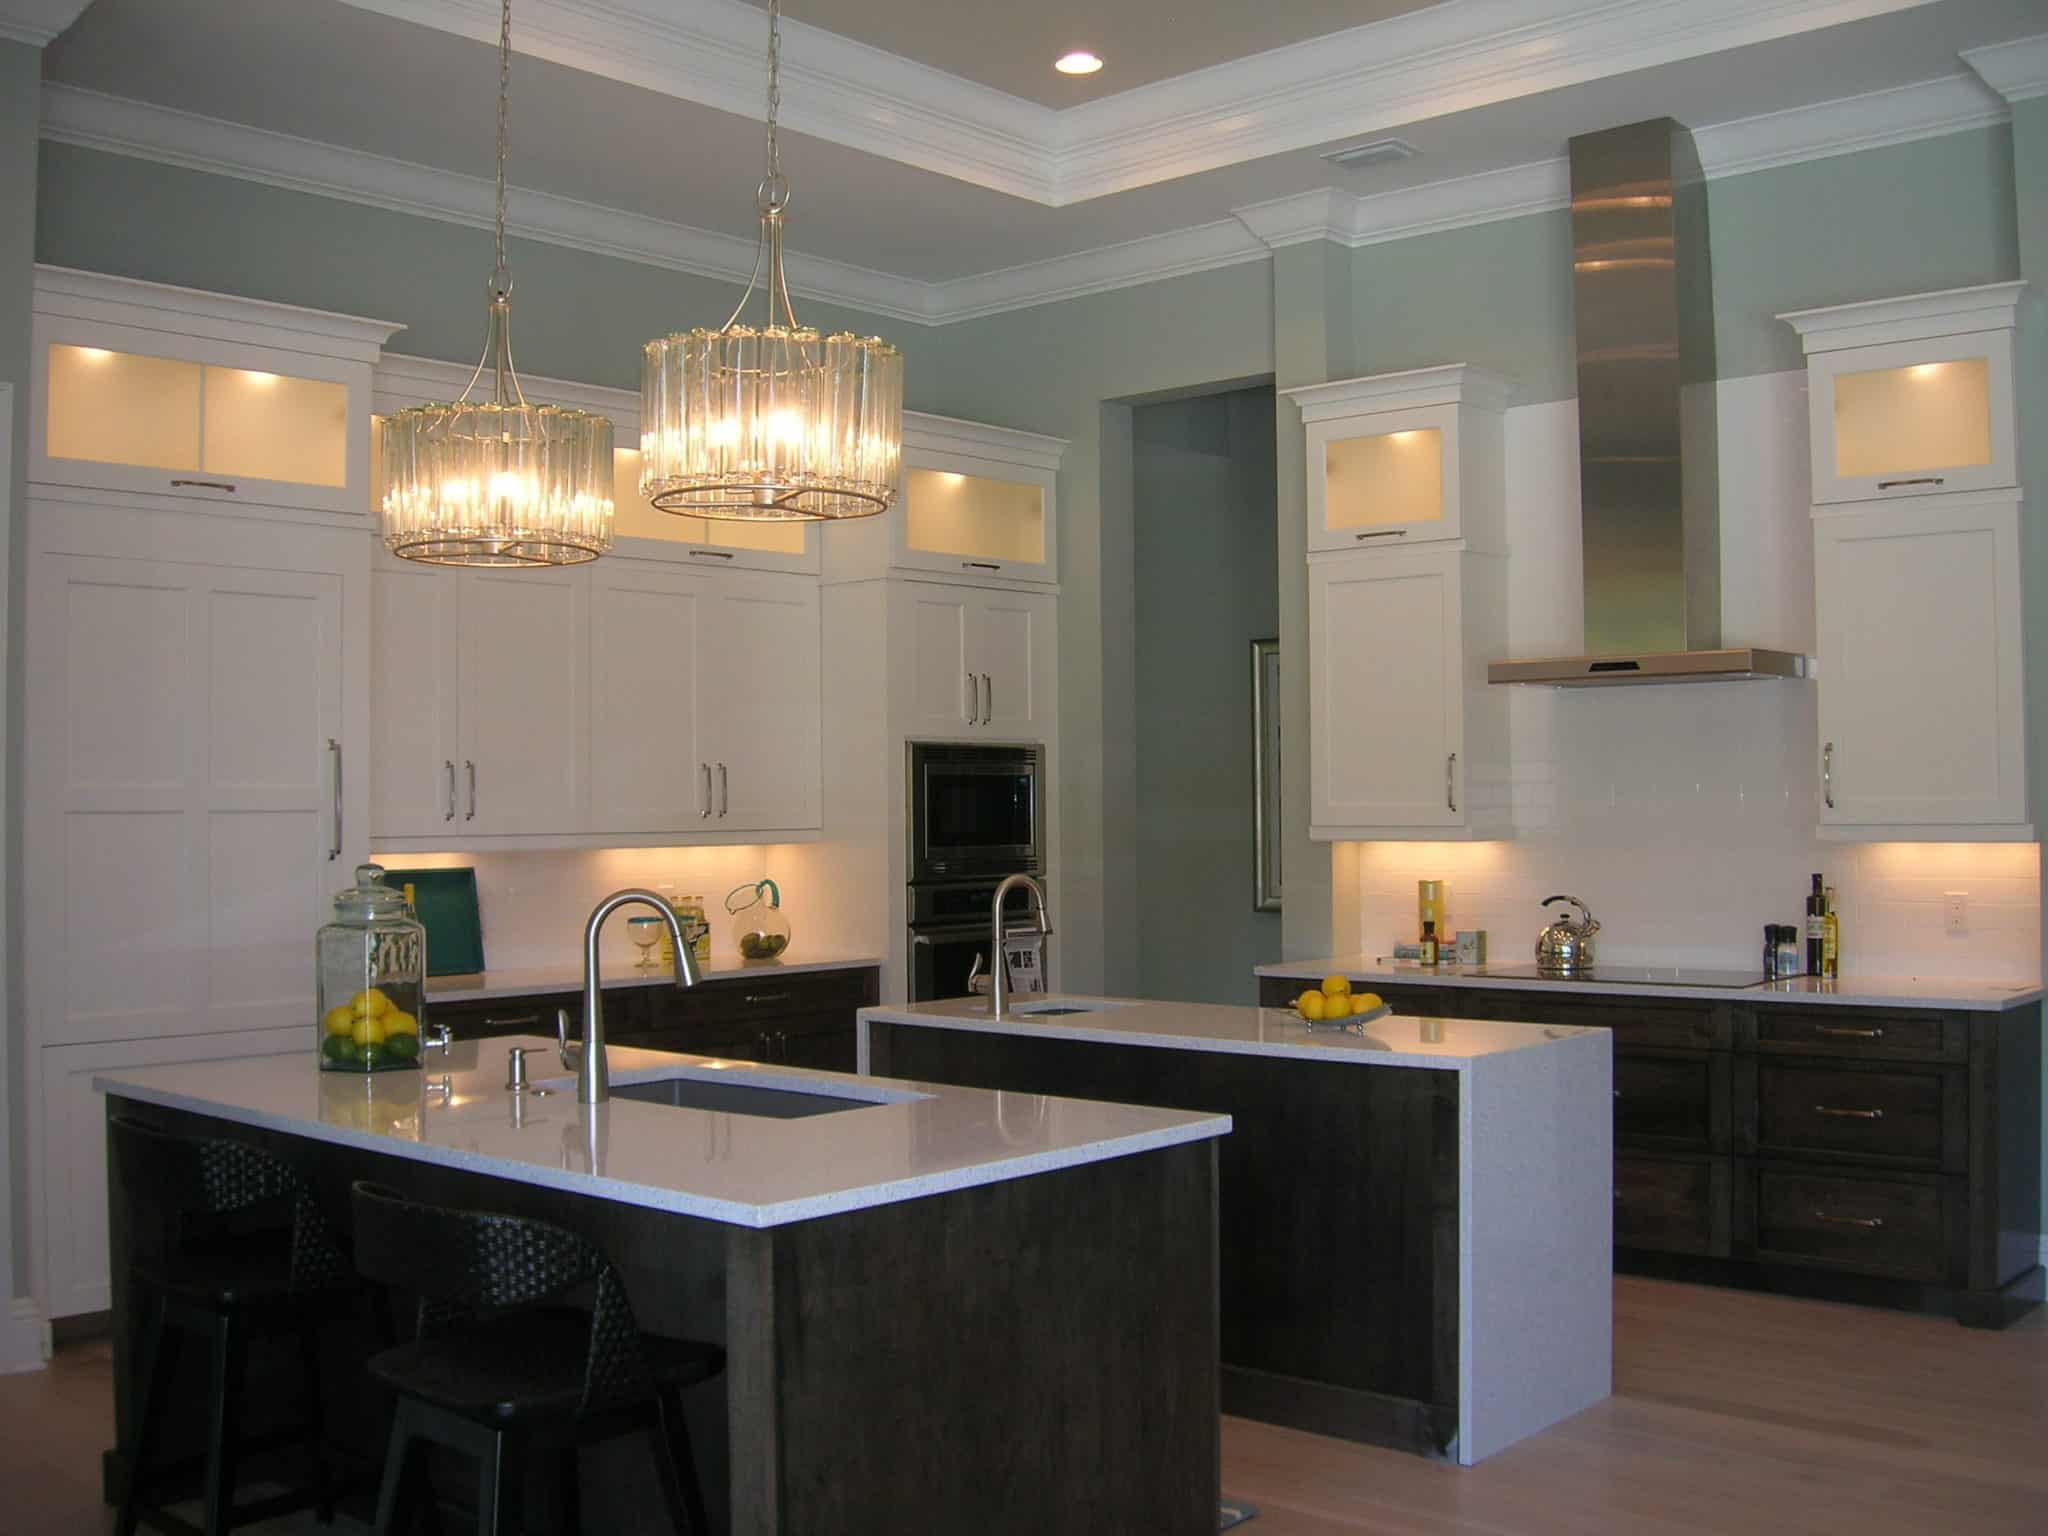 Modern White And Dark Wood Kitchen With Large Hanging Lights